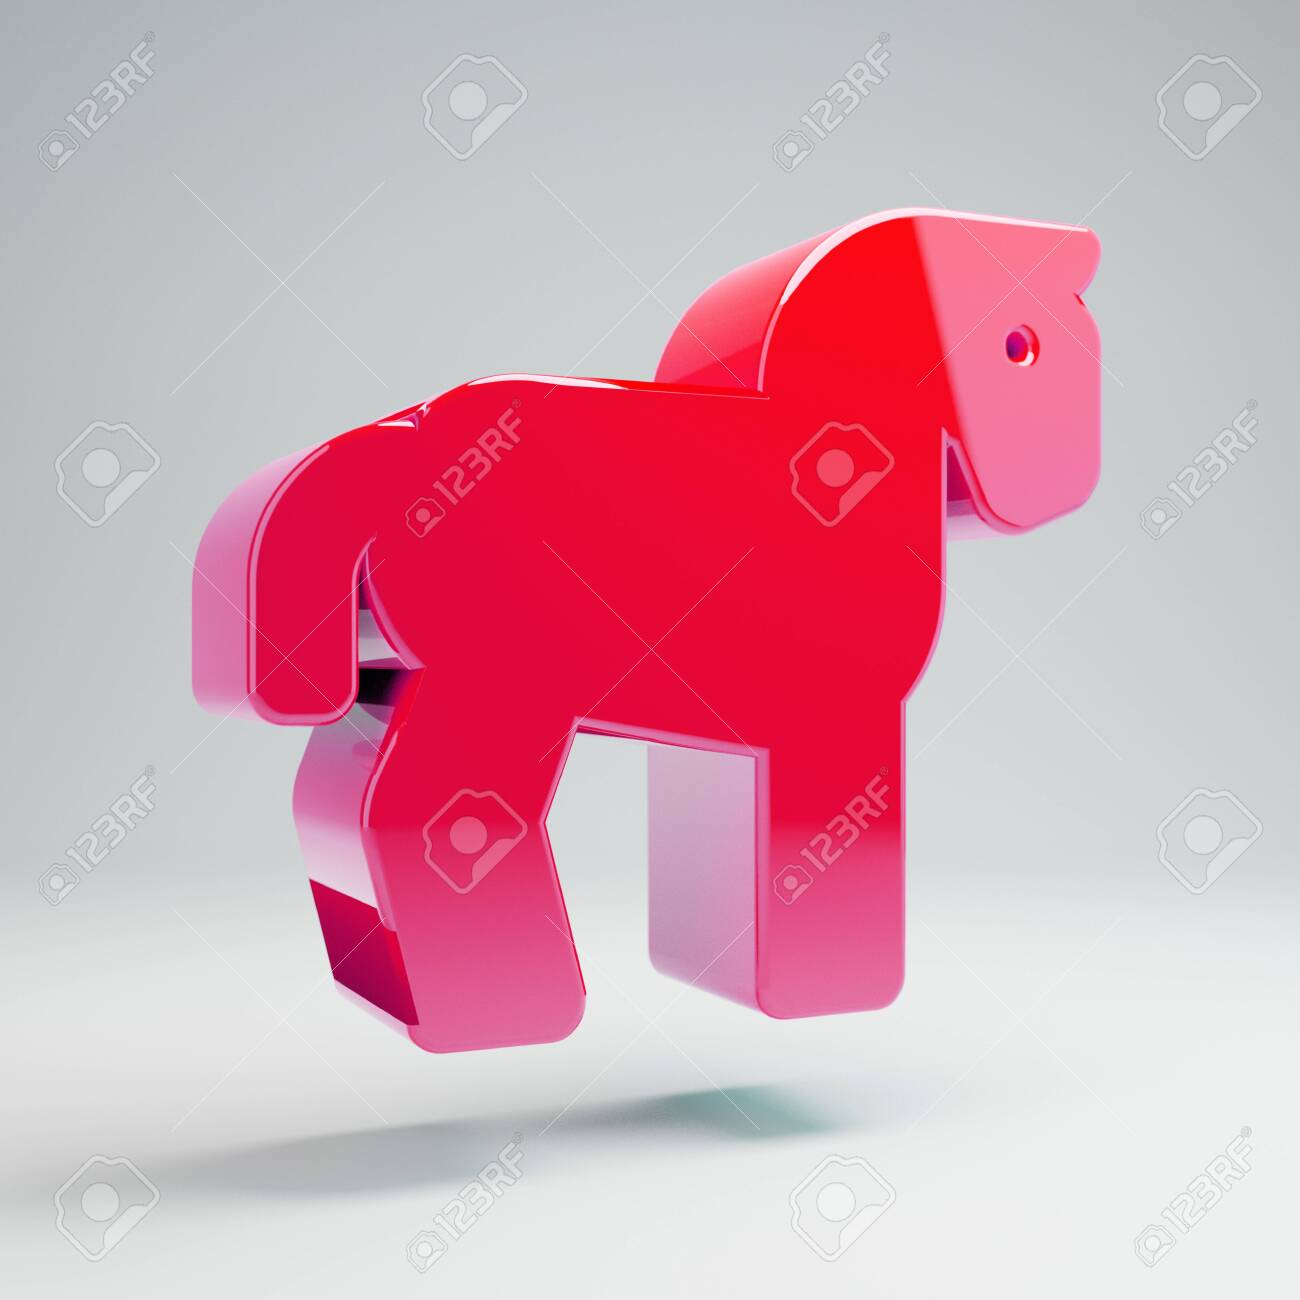 Volumetric Glossy Hot Pink Horse Icon Isolated On White Background Stock Photo Picture And Royalty Free Image Image 128054733